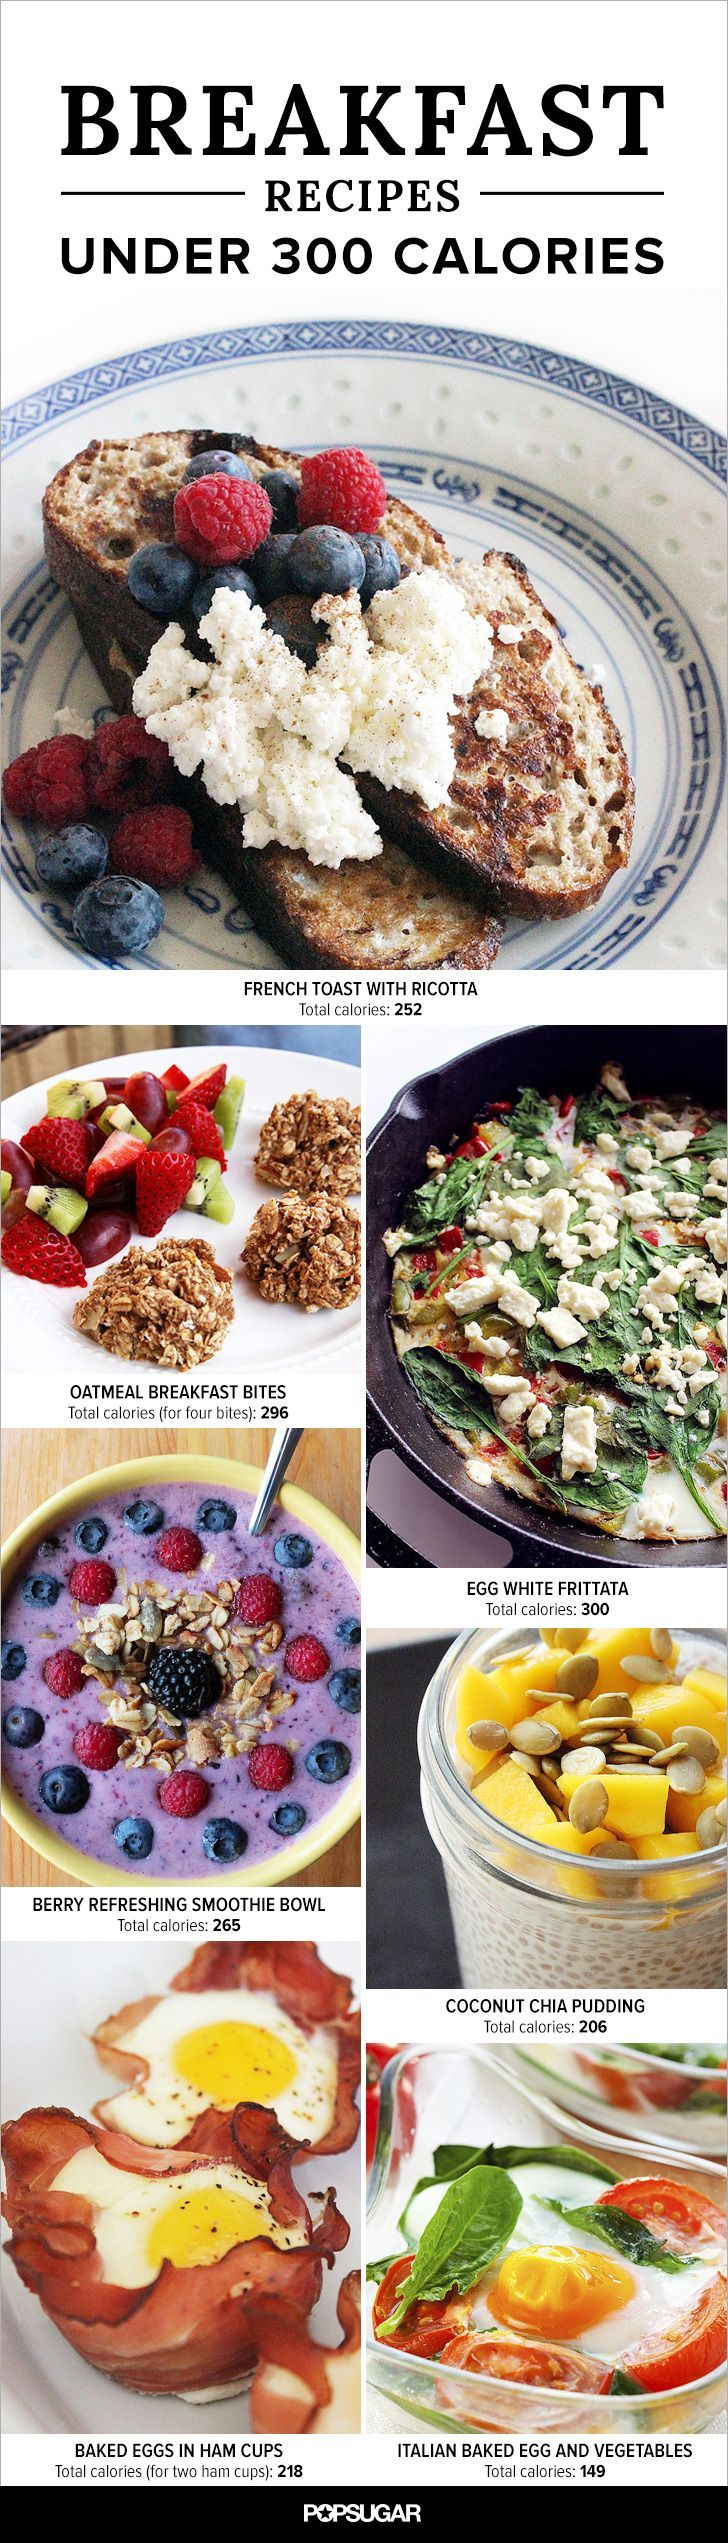 These 18 light recipes all clock in under 300 calories and will keep you satisfied and energized until your next snack or meal.